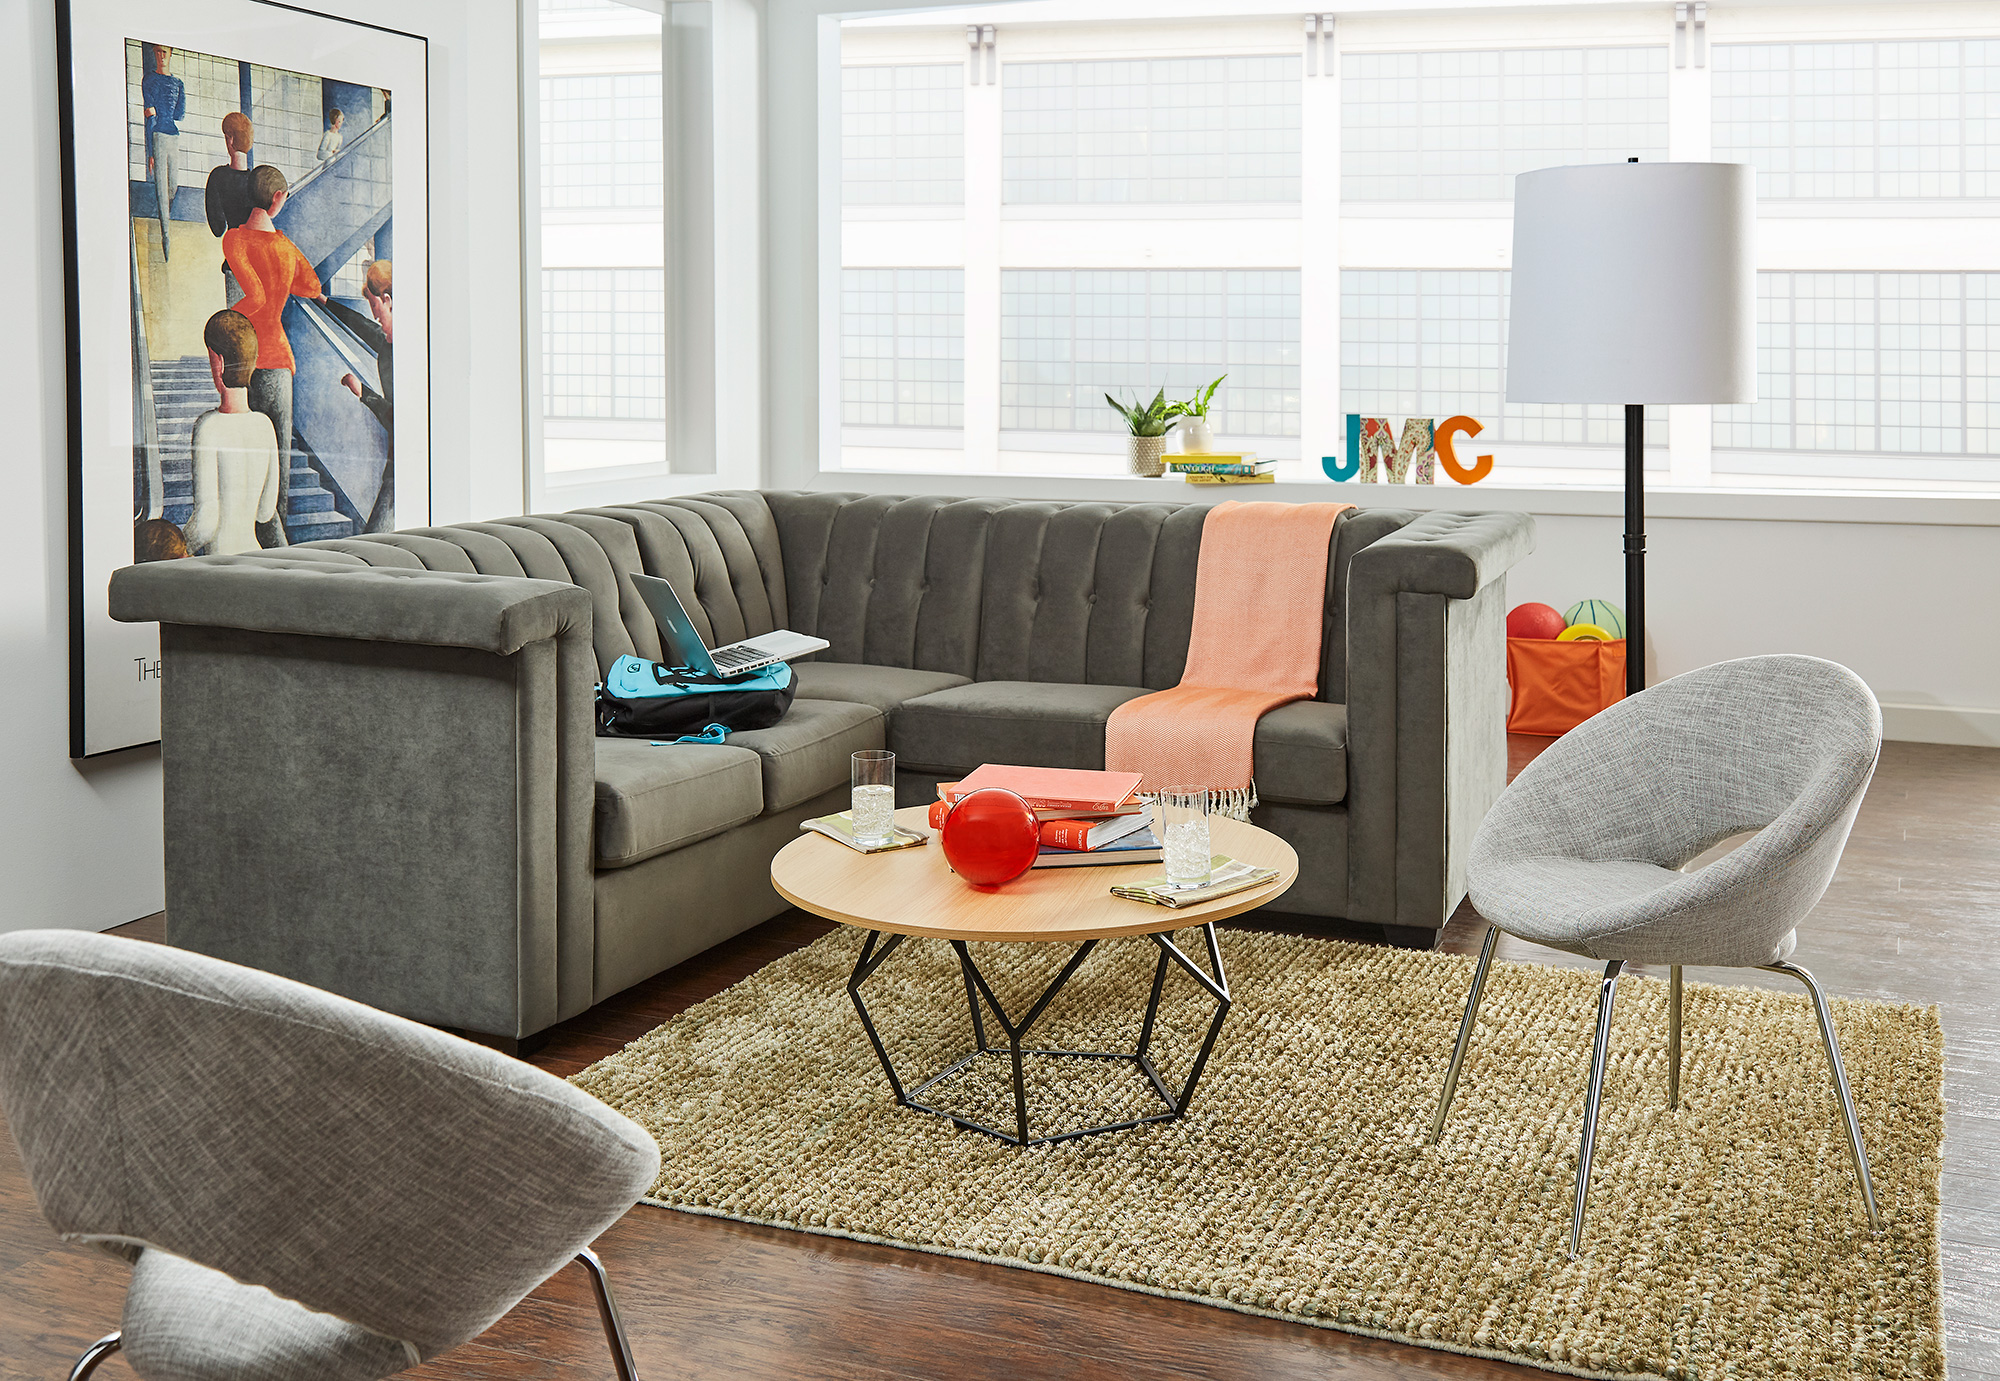 F3 iLive living room furniture for student housing